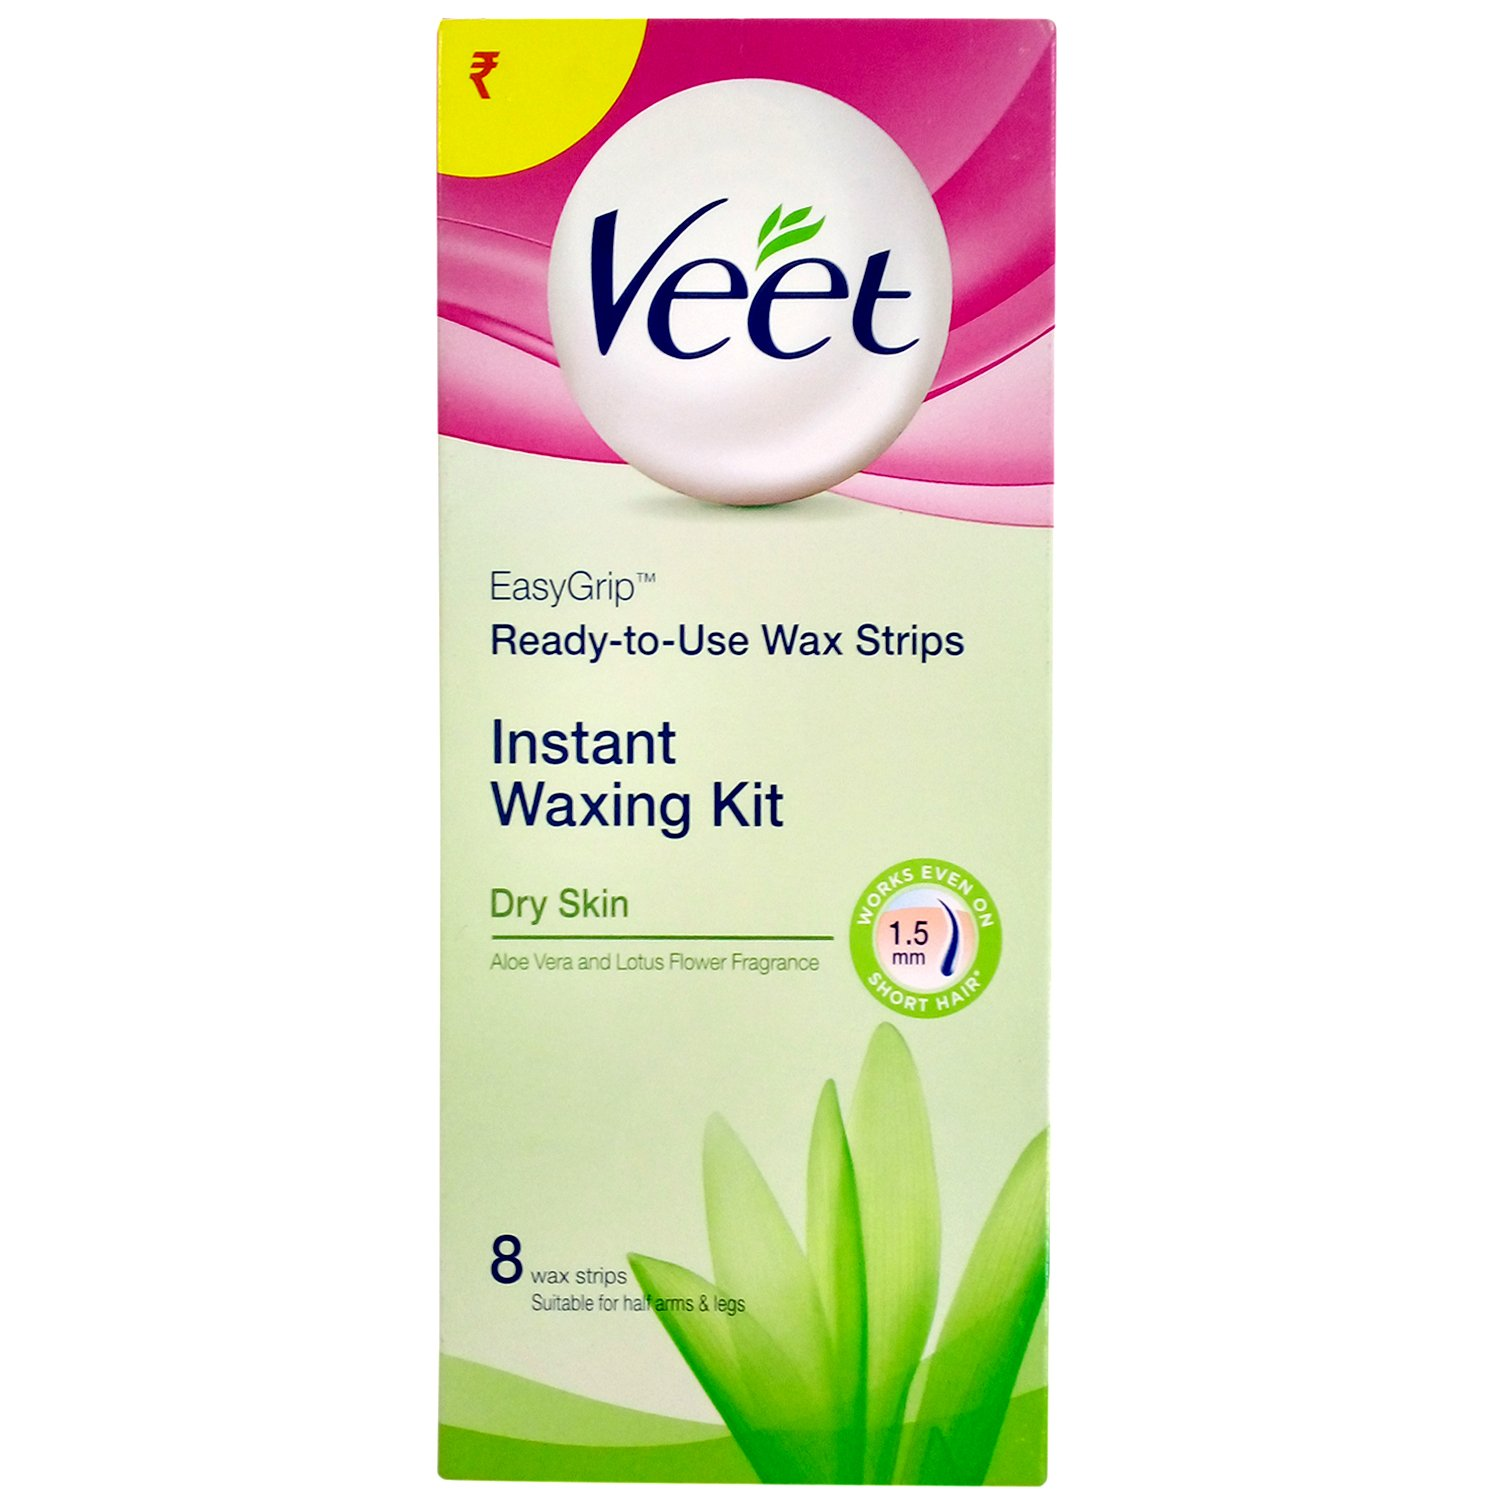 Veet Instant Waxing Kit for Dry Skin, 8 Pieces Carton